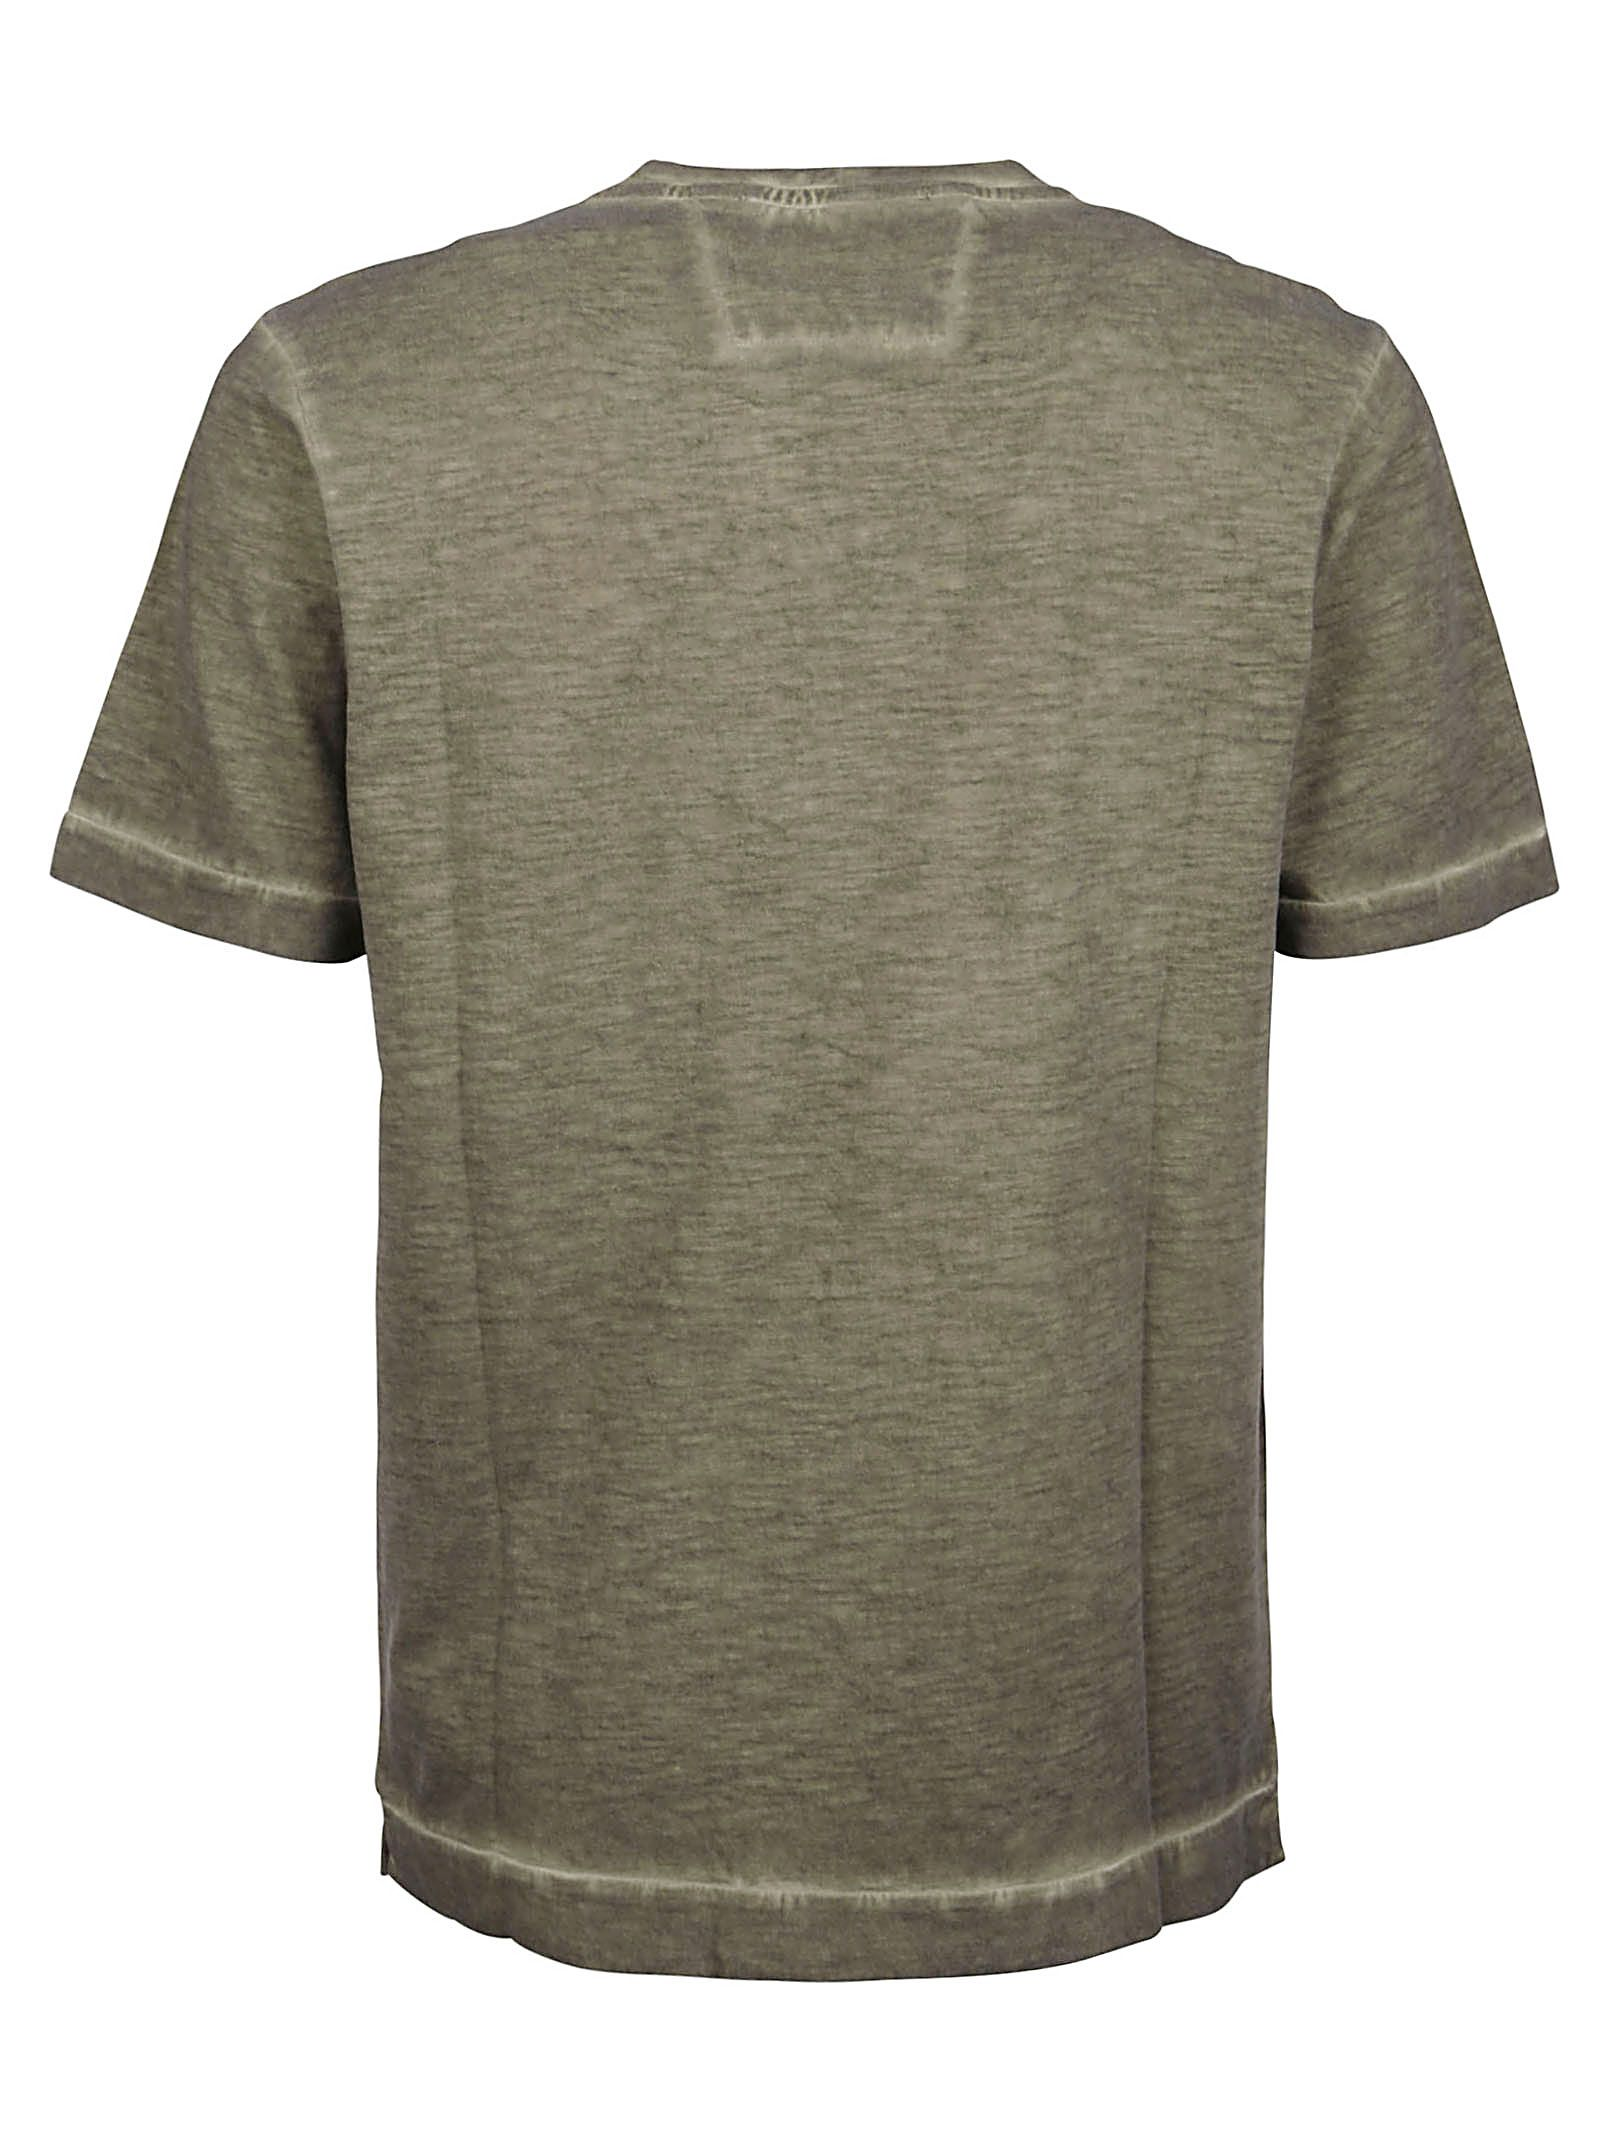 C.P. COMPANY Cottons CP COMPANY MEN'S GREEN OTHER MATERIALS T-SHIRT